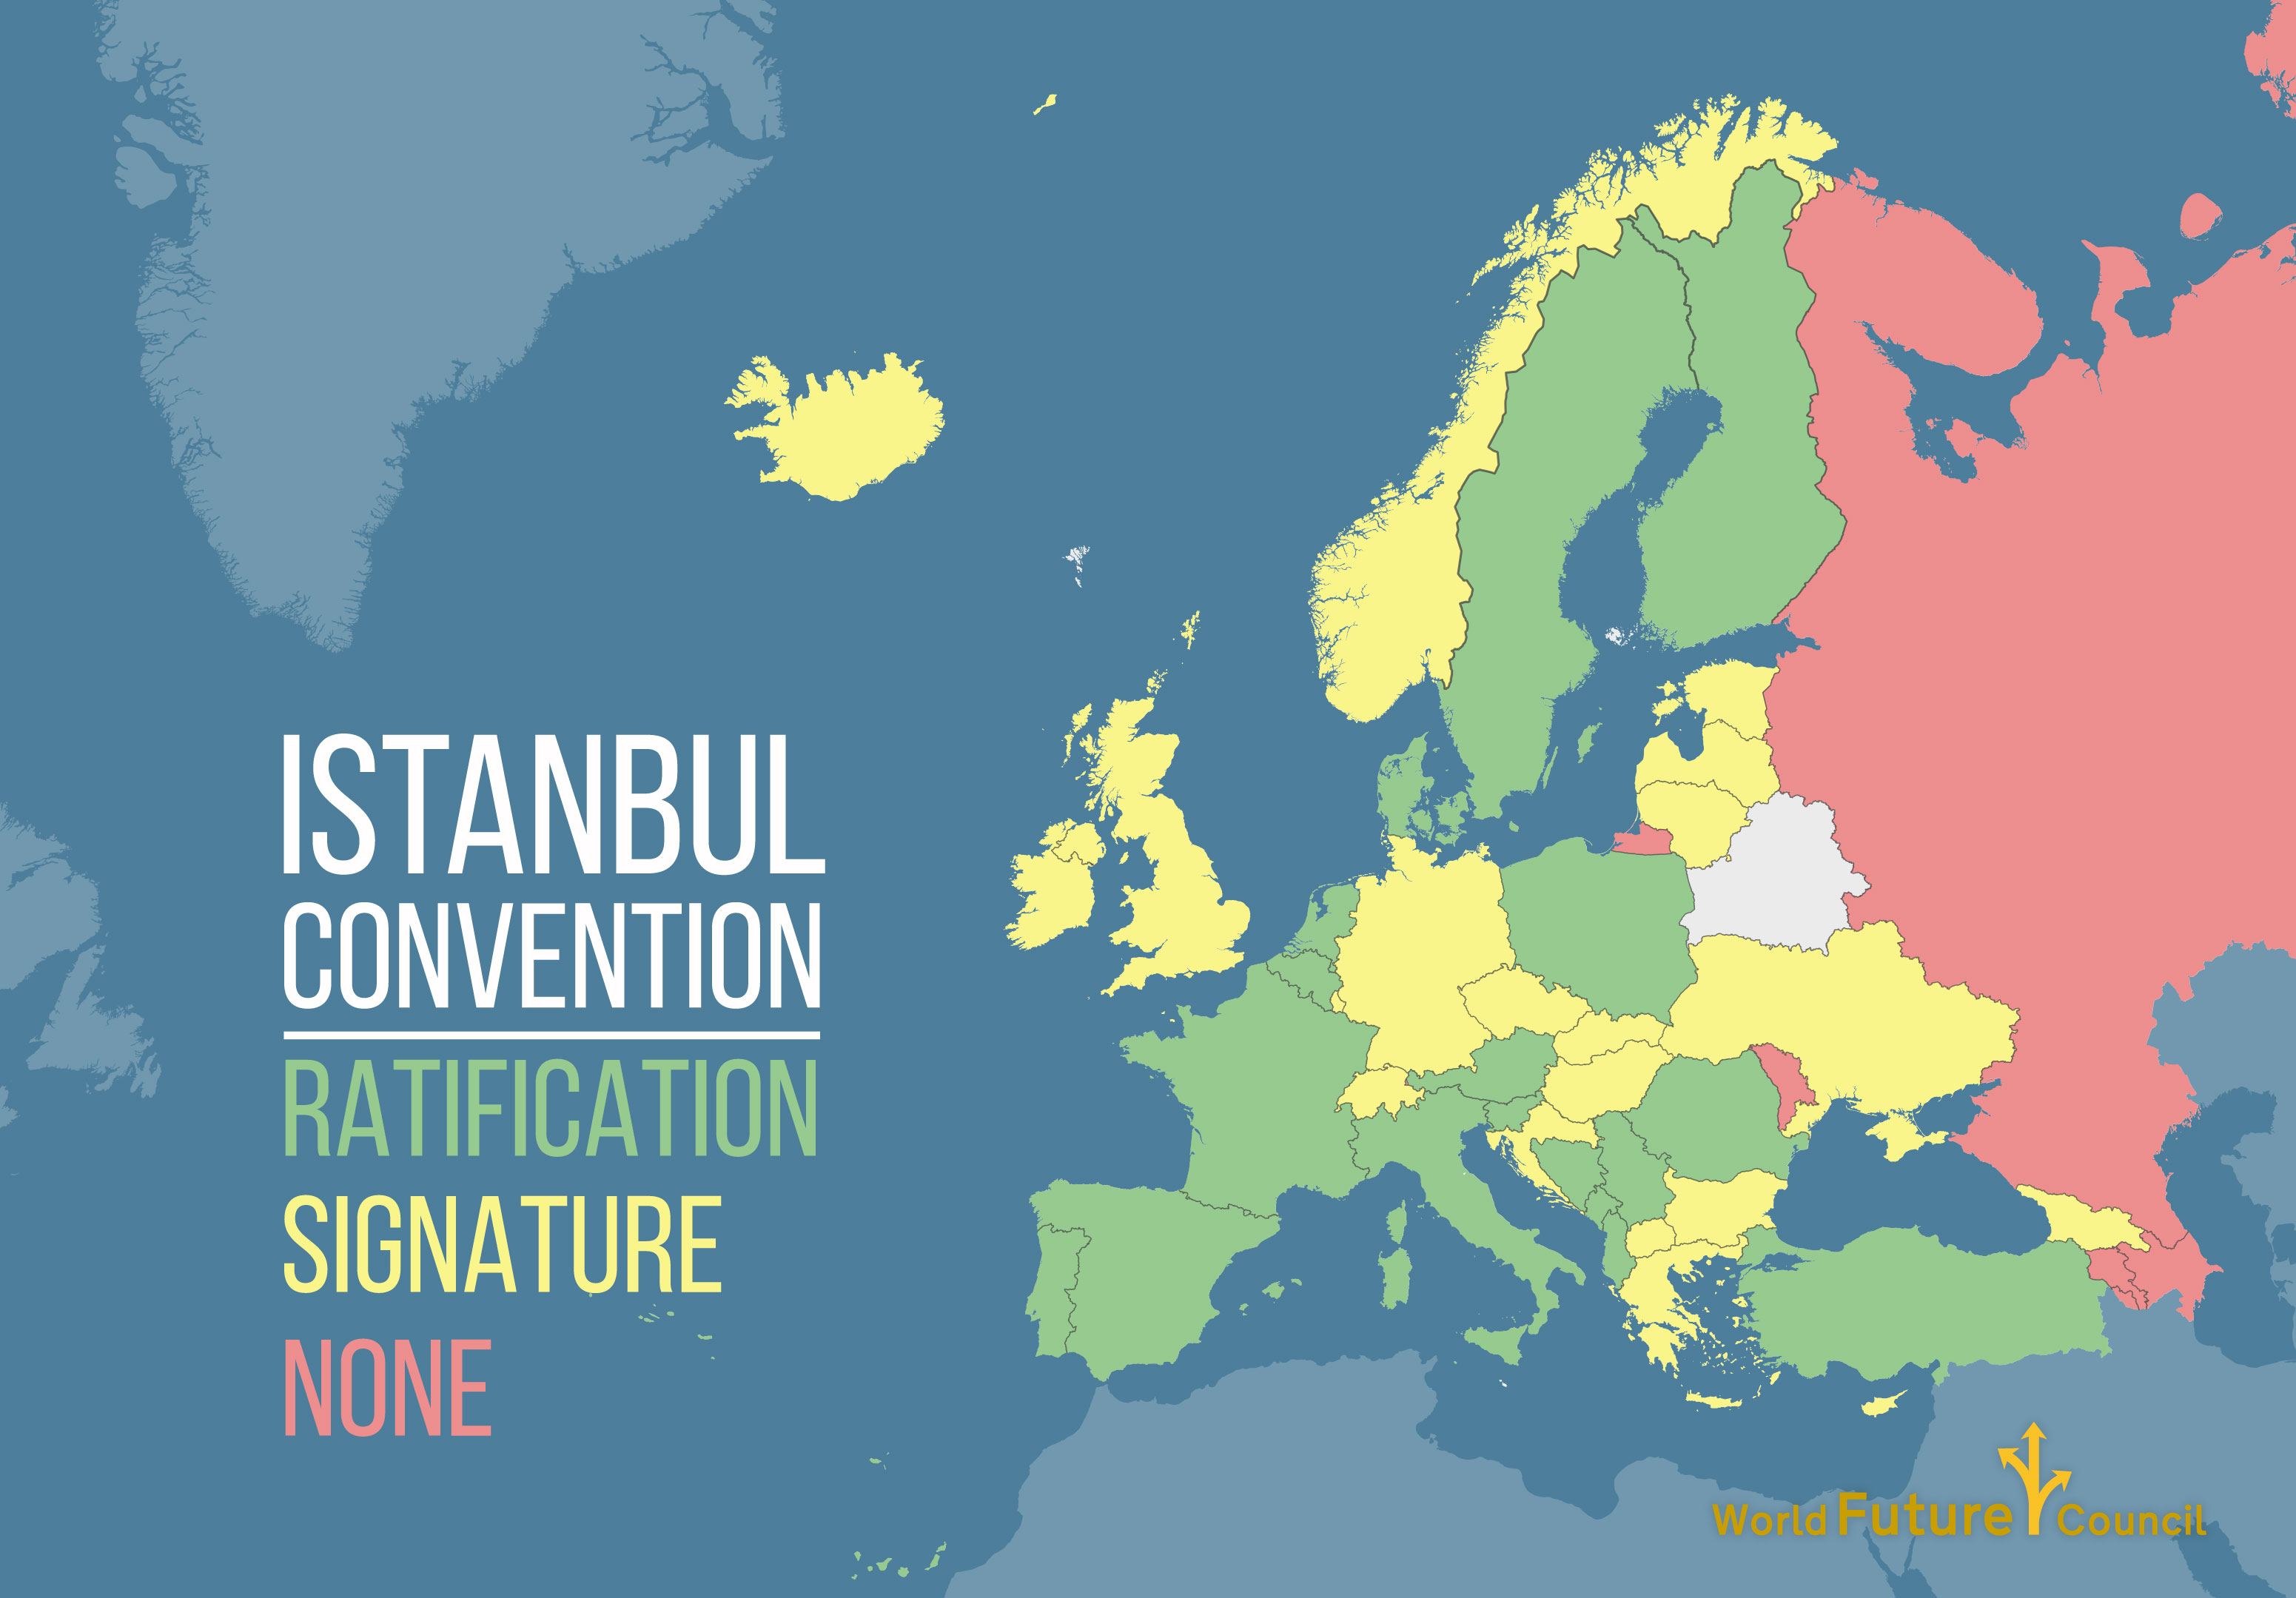 Istanbul Convention: Check how your country is doing in our map on jerusalem map, baghdad map, naples italy map, turkey map, black sea map, moscow map, novorossiysk map, romania map, oslo map, madrid map, casablanca map, constantinople map, dardanelles map, kabul map, mediterranean sea map, dubai map, tehran map, ottoman empire map, cordoba map, ankara map,